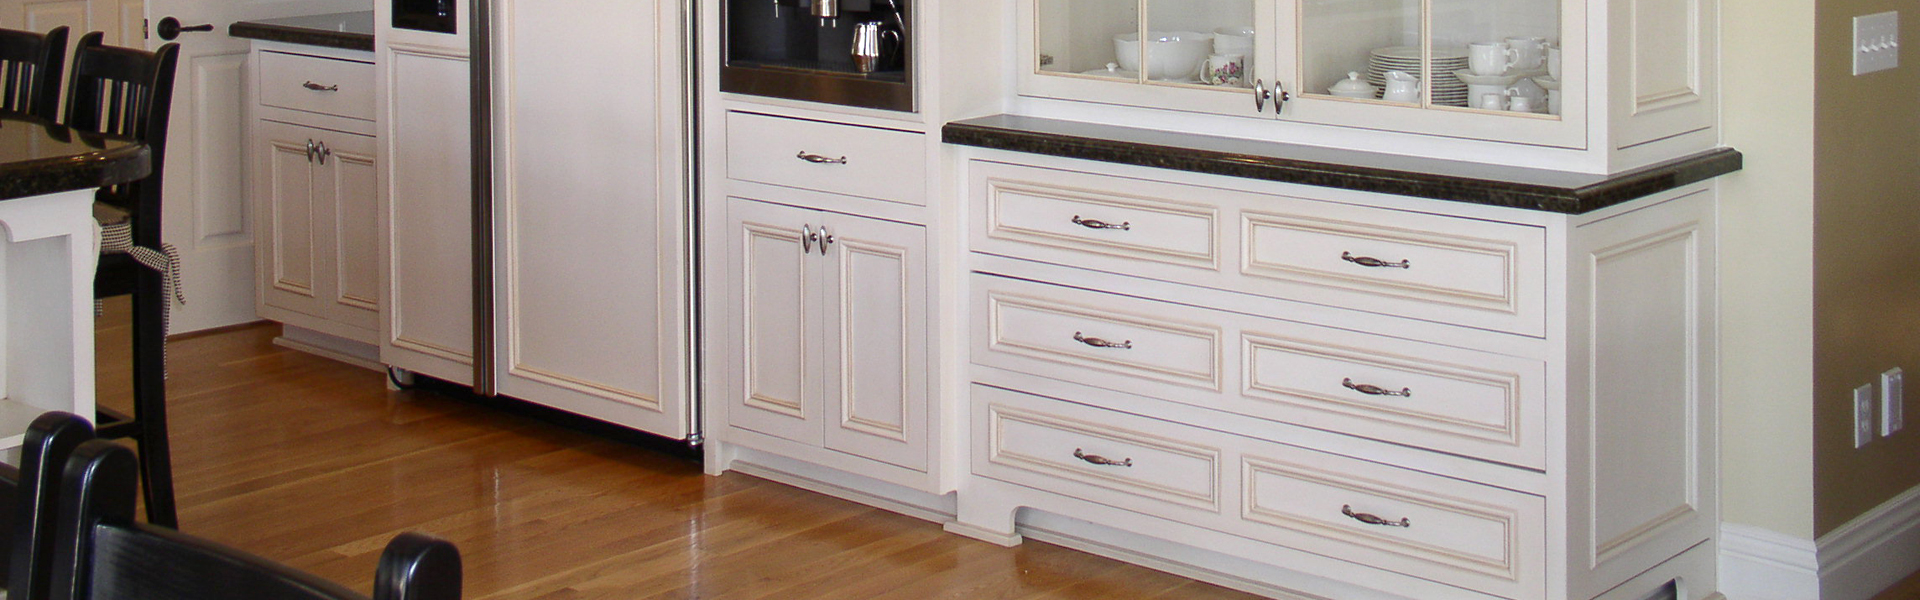 Imperial Custom Cabinets Inc